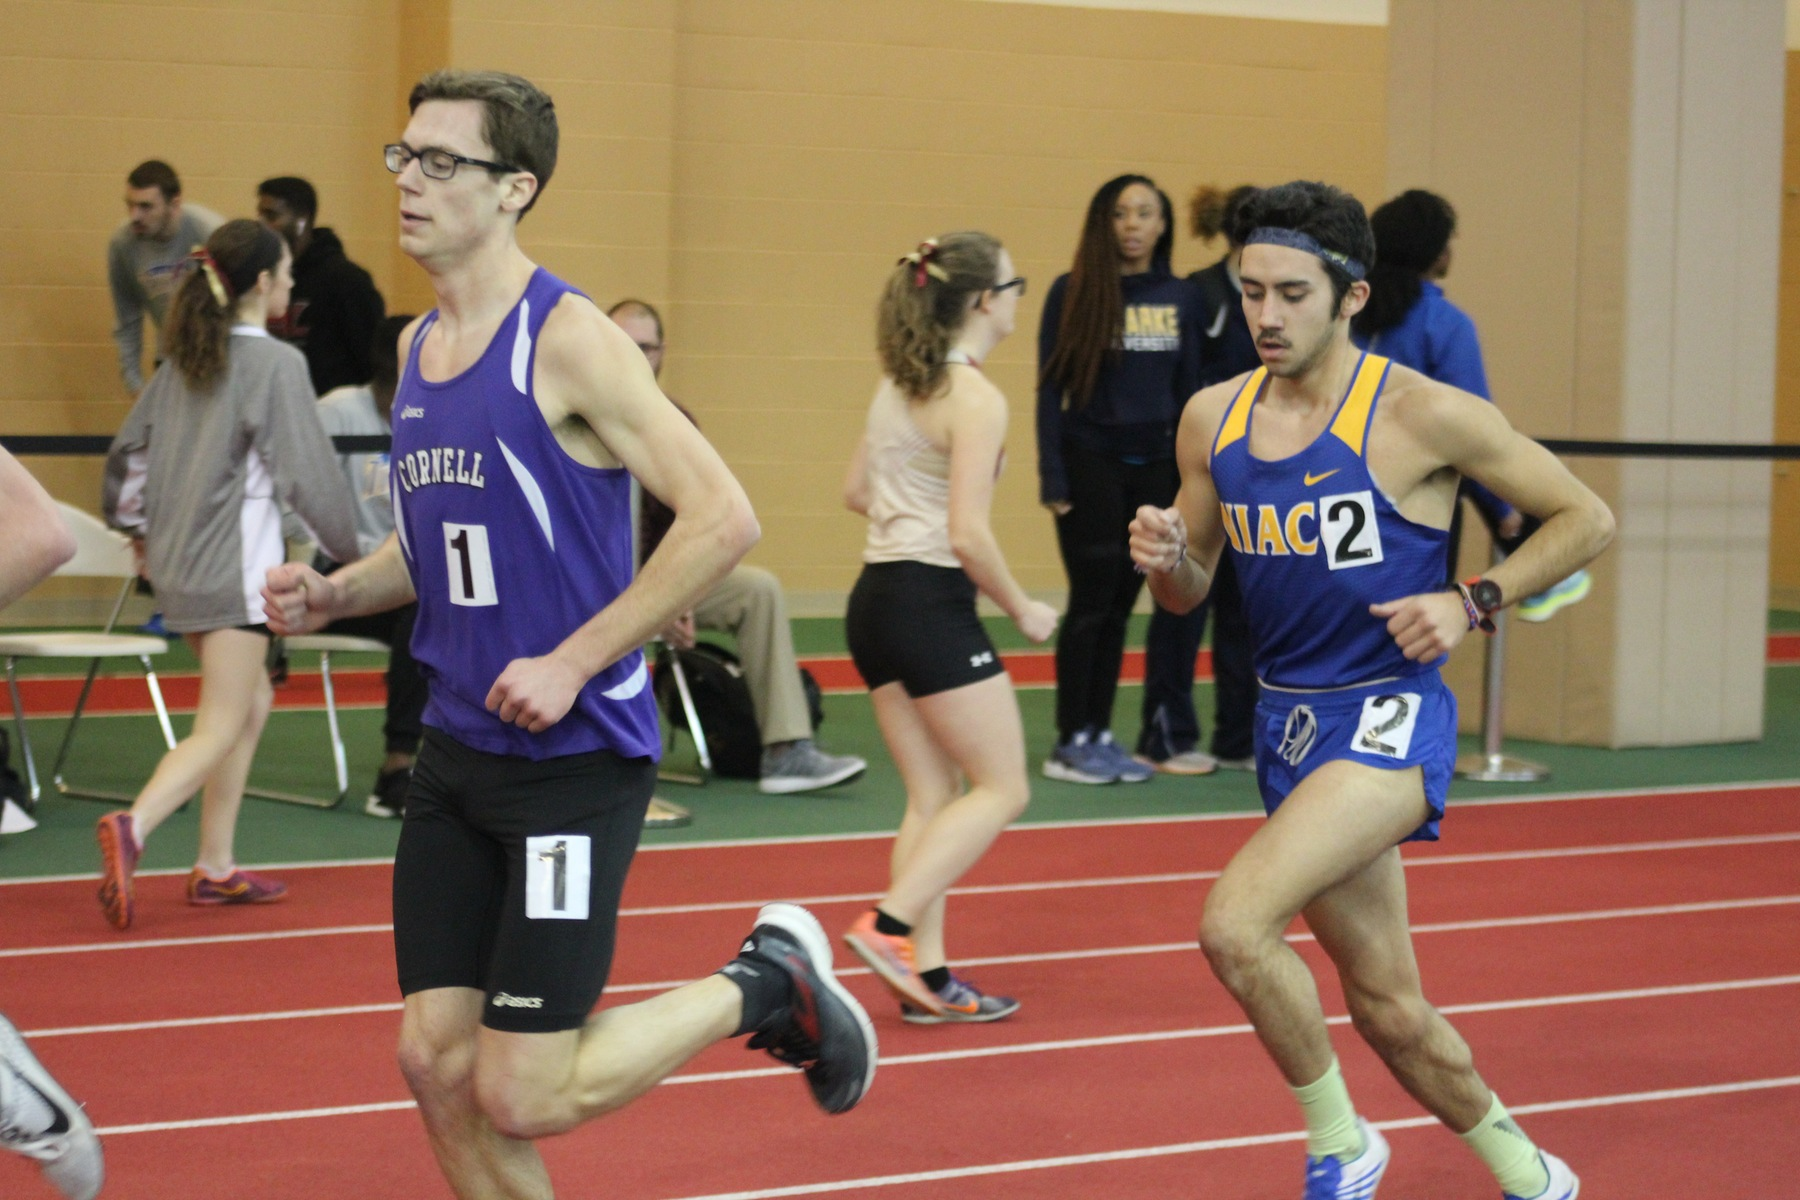 NIACC's Brian Jacques runs to a second-place finish in the 5,000-meter run at the Grinnell Invitational on Saturday.